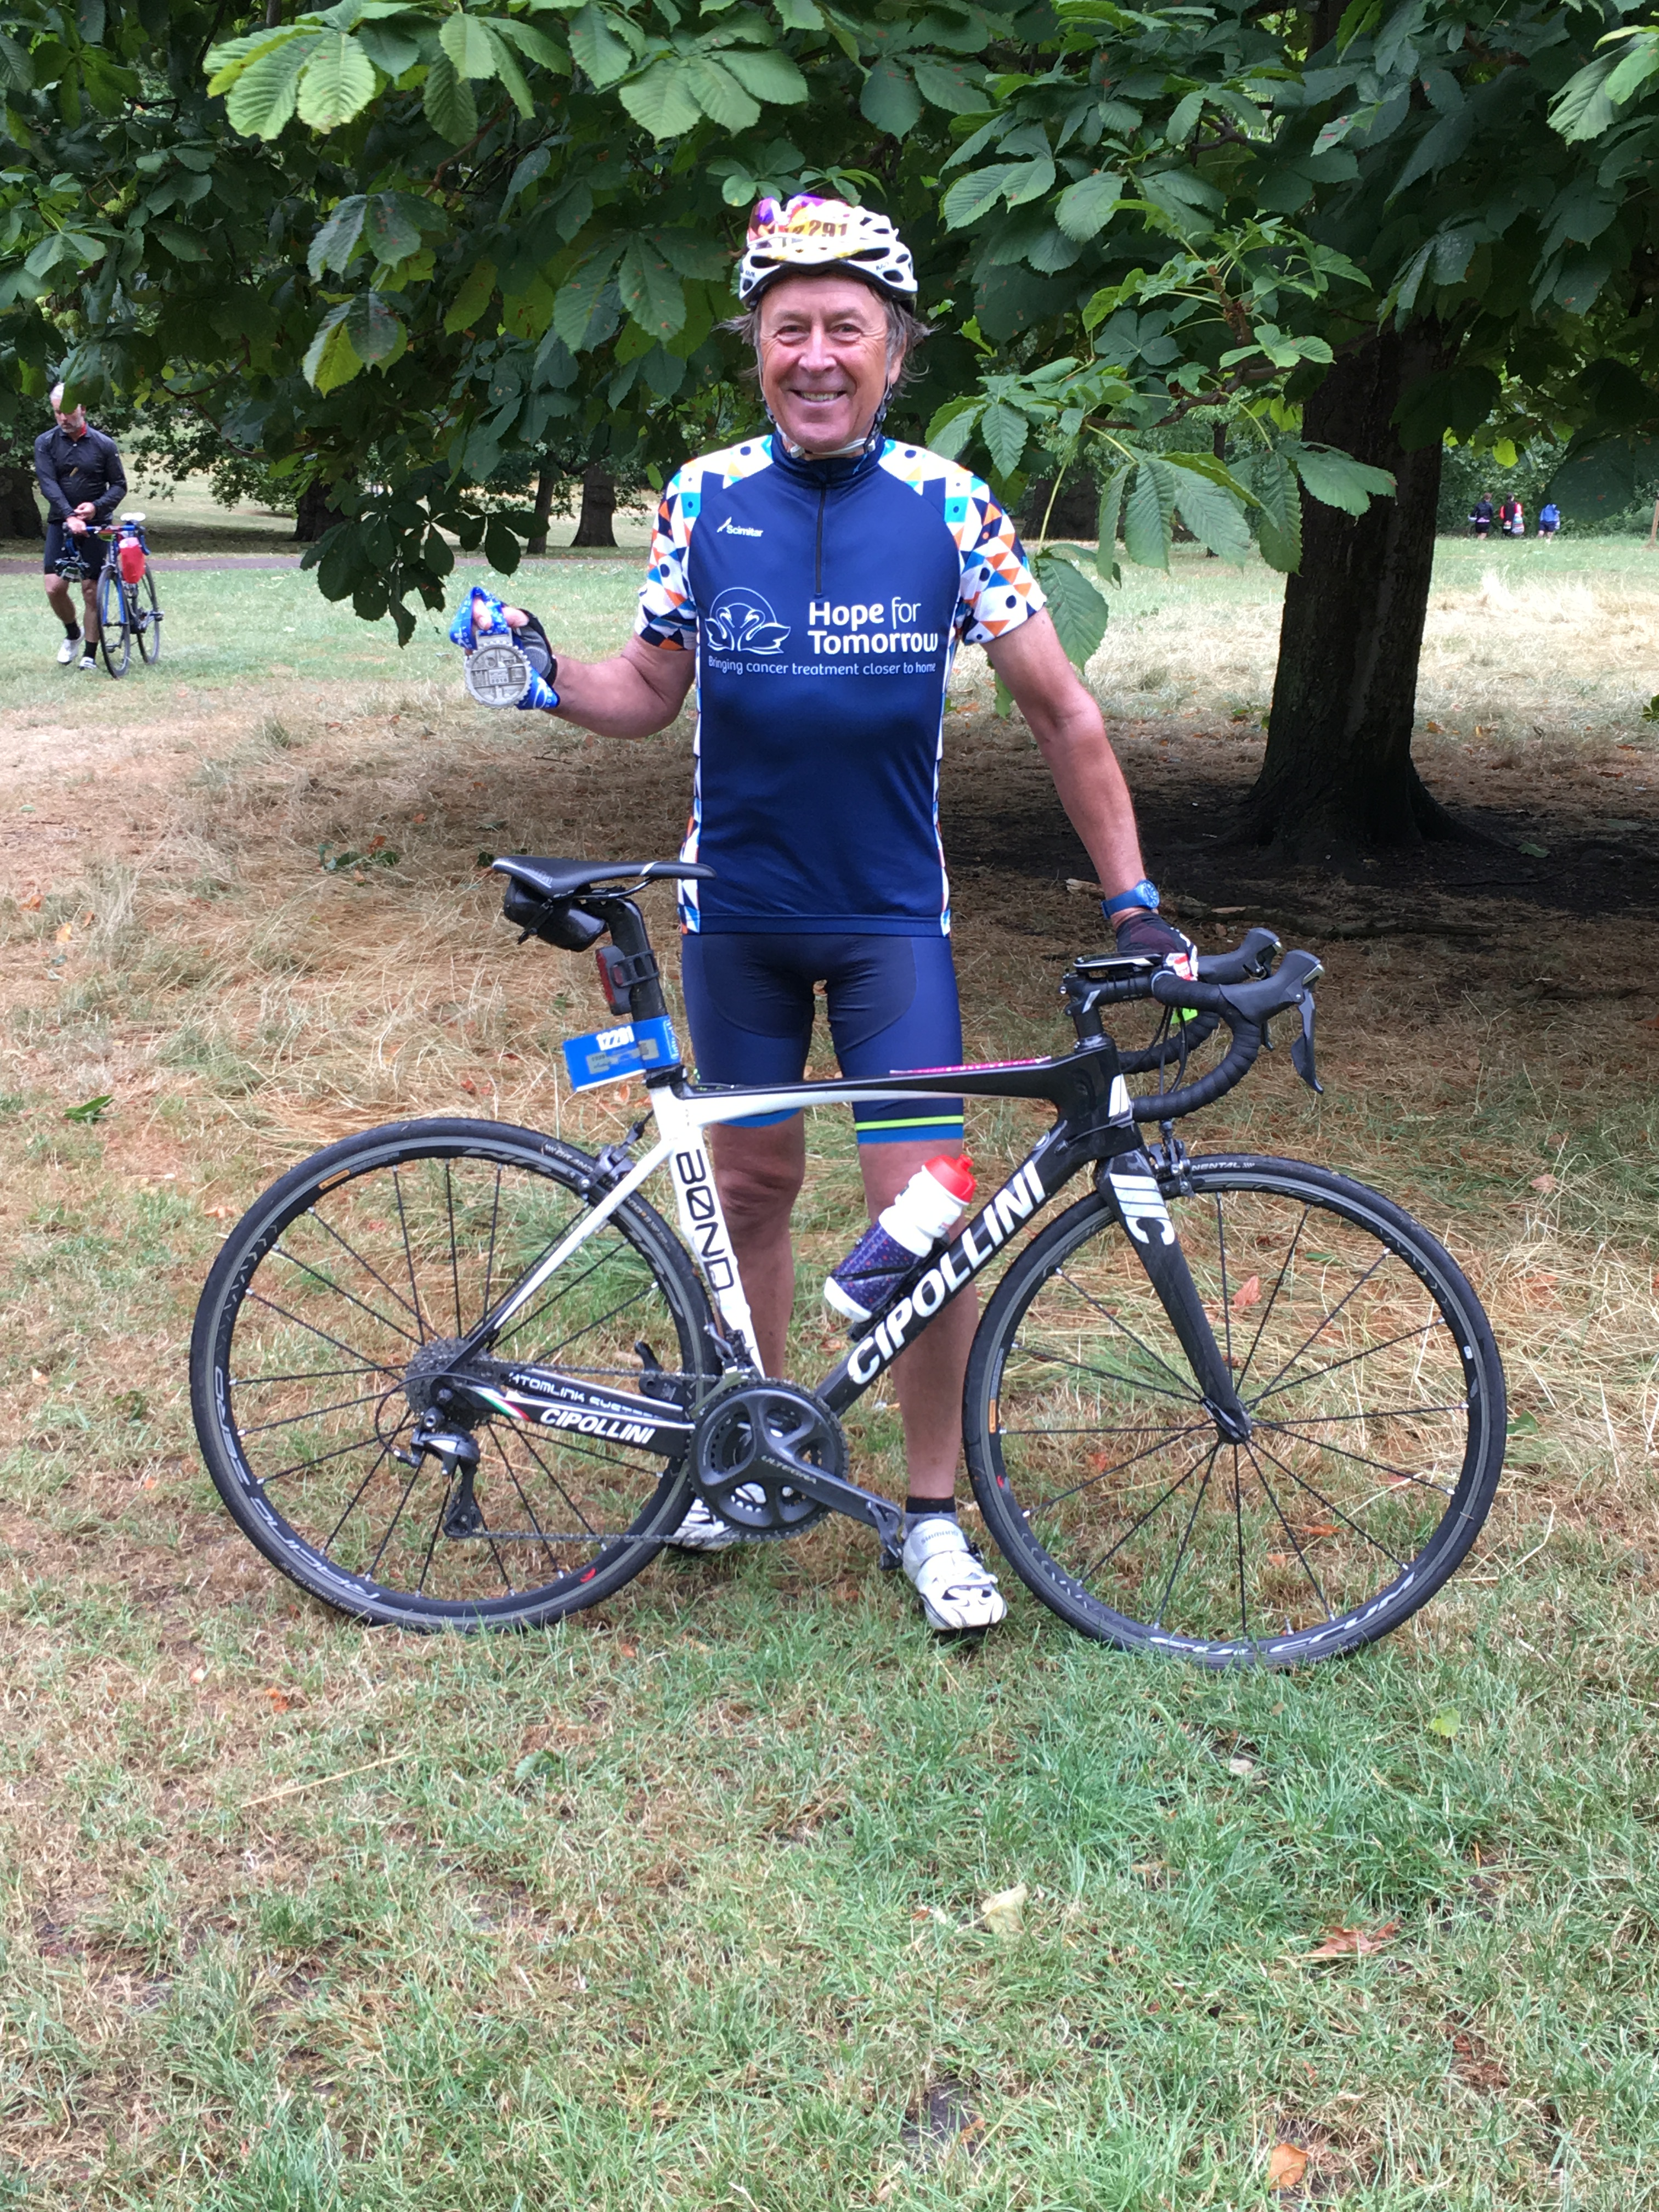 Stephen Bawtree with his medal at the finish line of the Prudential London - Surrey bike ride